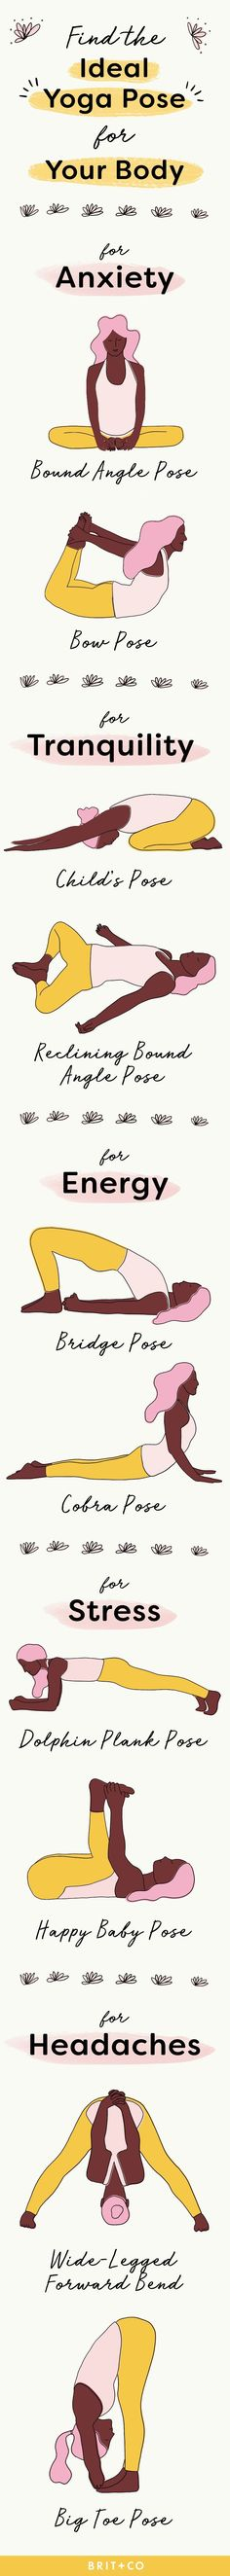 Bookmark this healthy living infographic to discover the perfect yoga poses for your body to help you with anxiety, tranquility, stress, headaches, and energy with poses like bow, child's, bridge, cobra, happy baby, big toe and more poses.